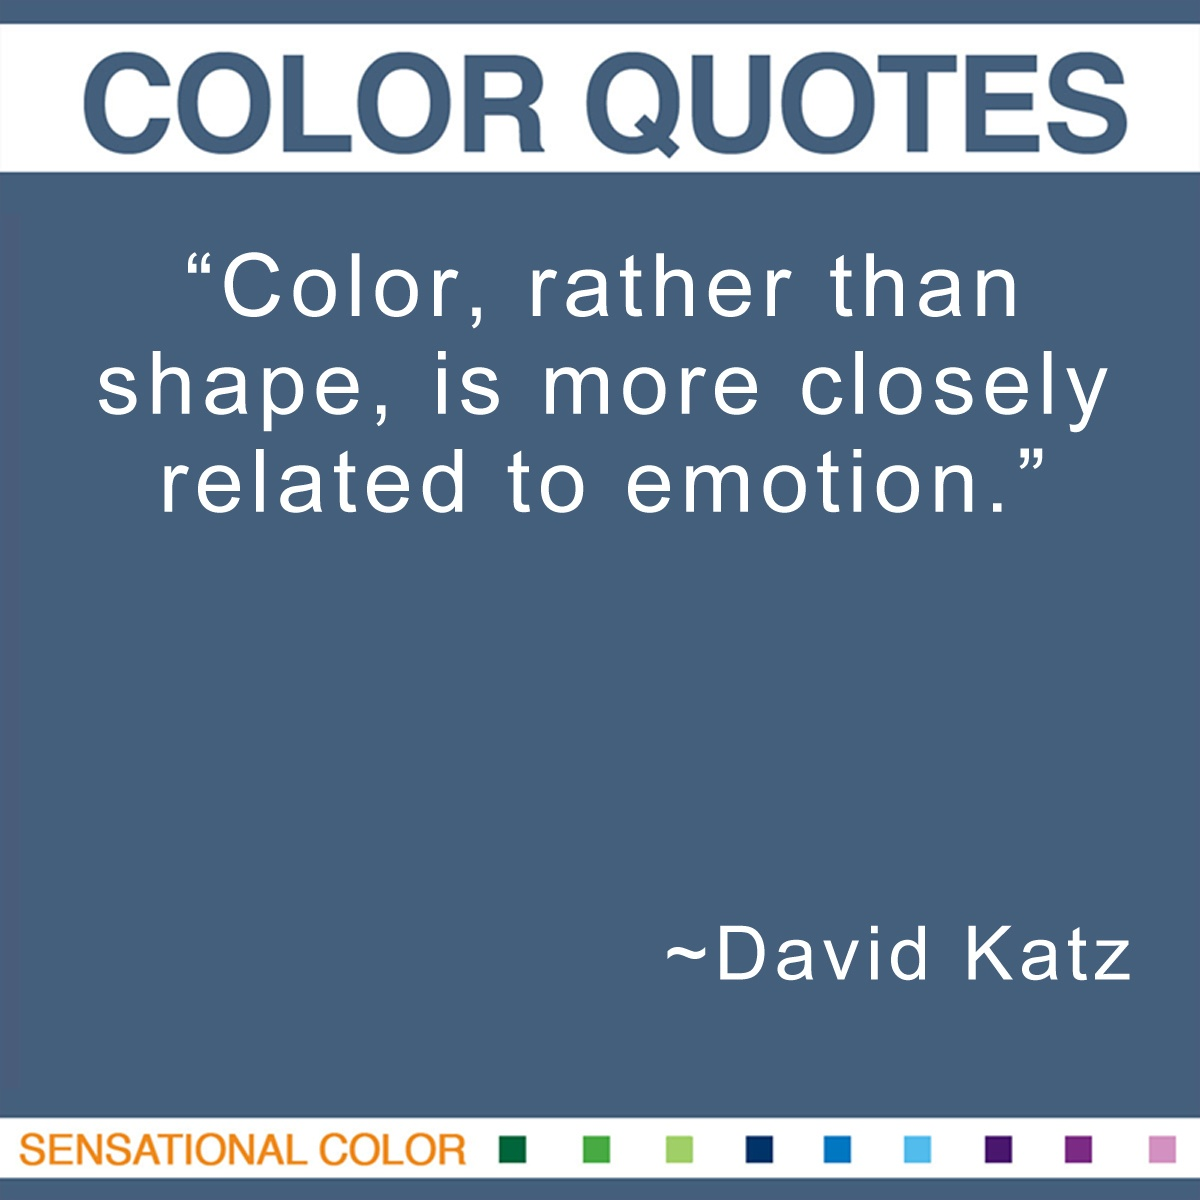 """""""Color, rather than shape, is more closely related to emotion."""" - David Katz"""